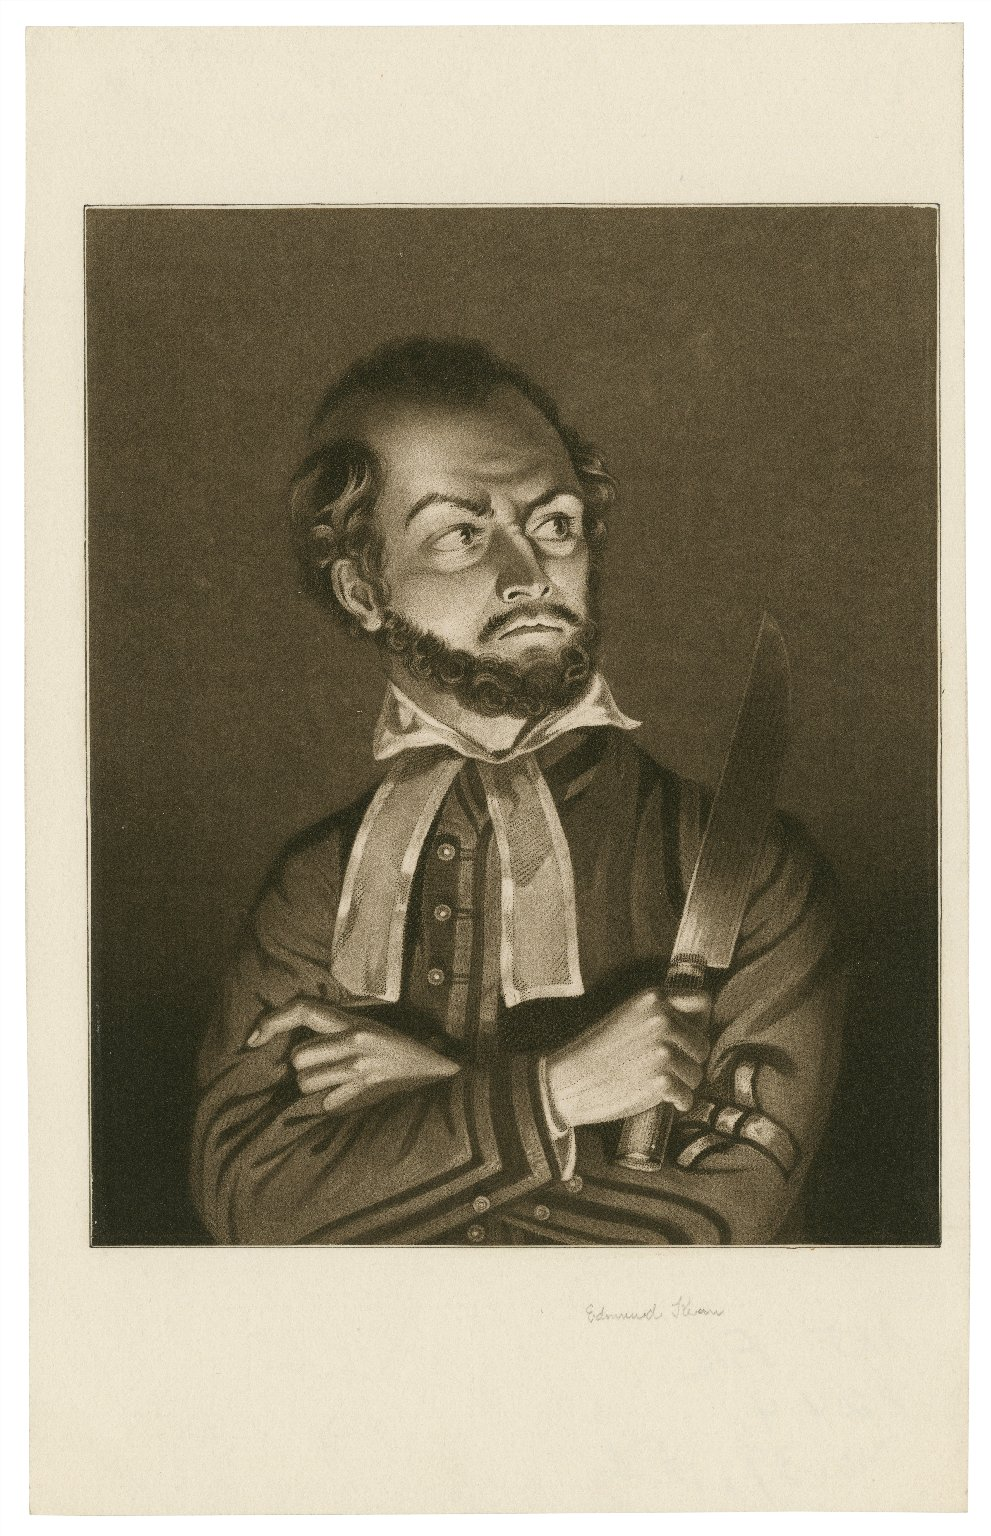 Edmund Kean [as Shylock in Shakespeare's Merchant of Venice] [graphic] / [mezzotint by Meyer after Watts].